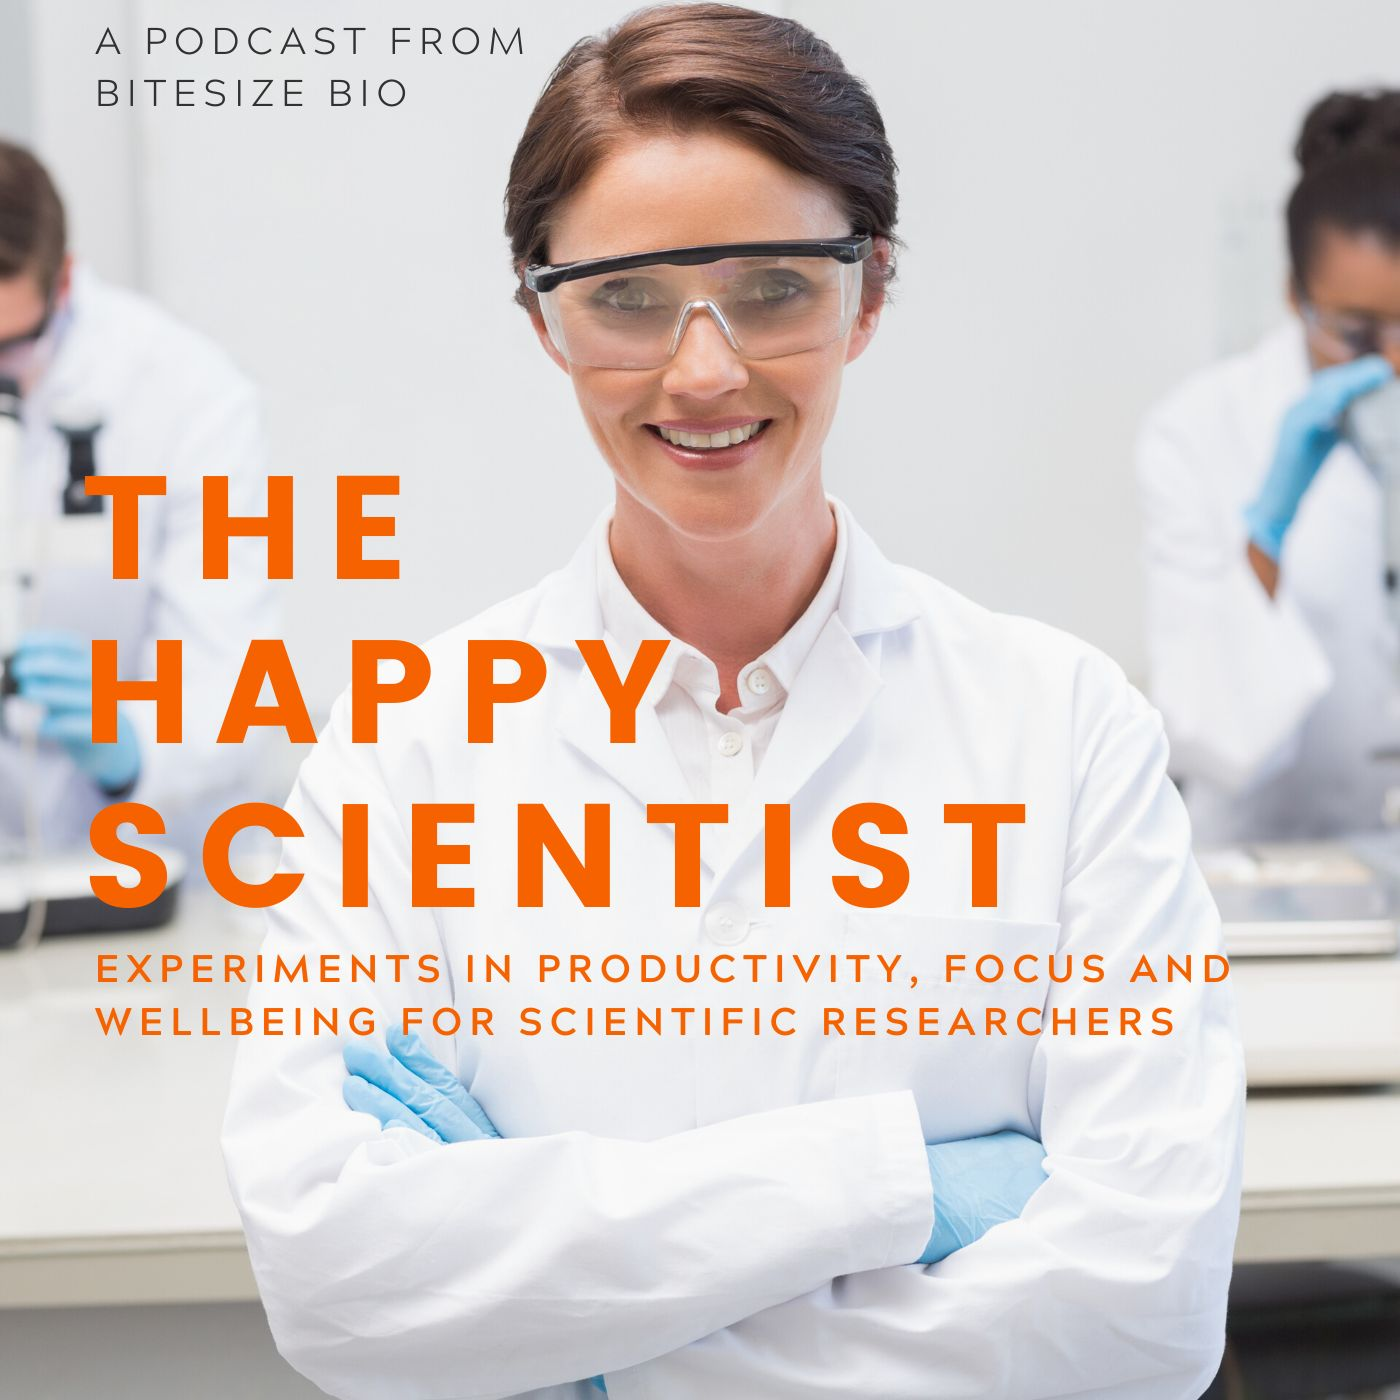 The Happy Scientist